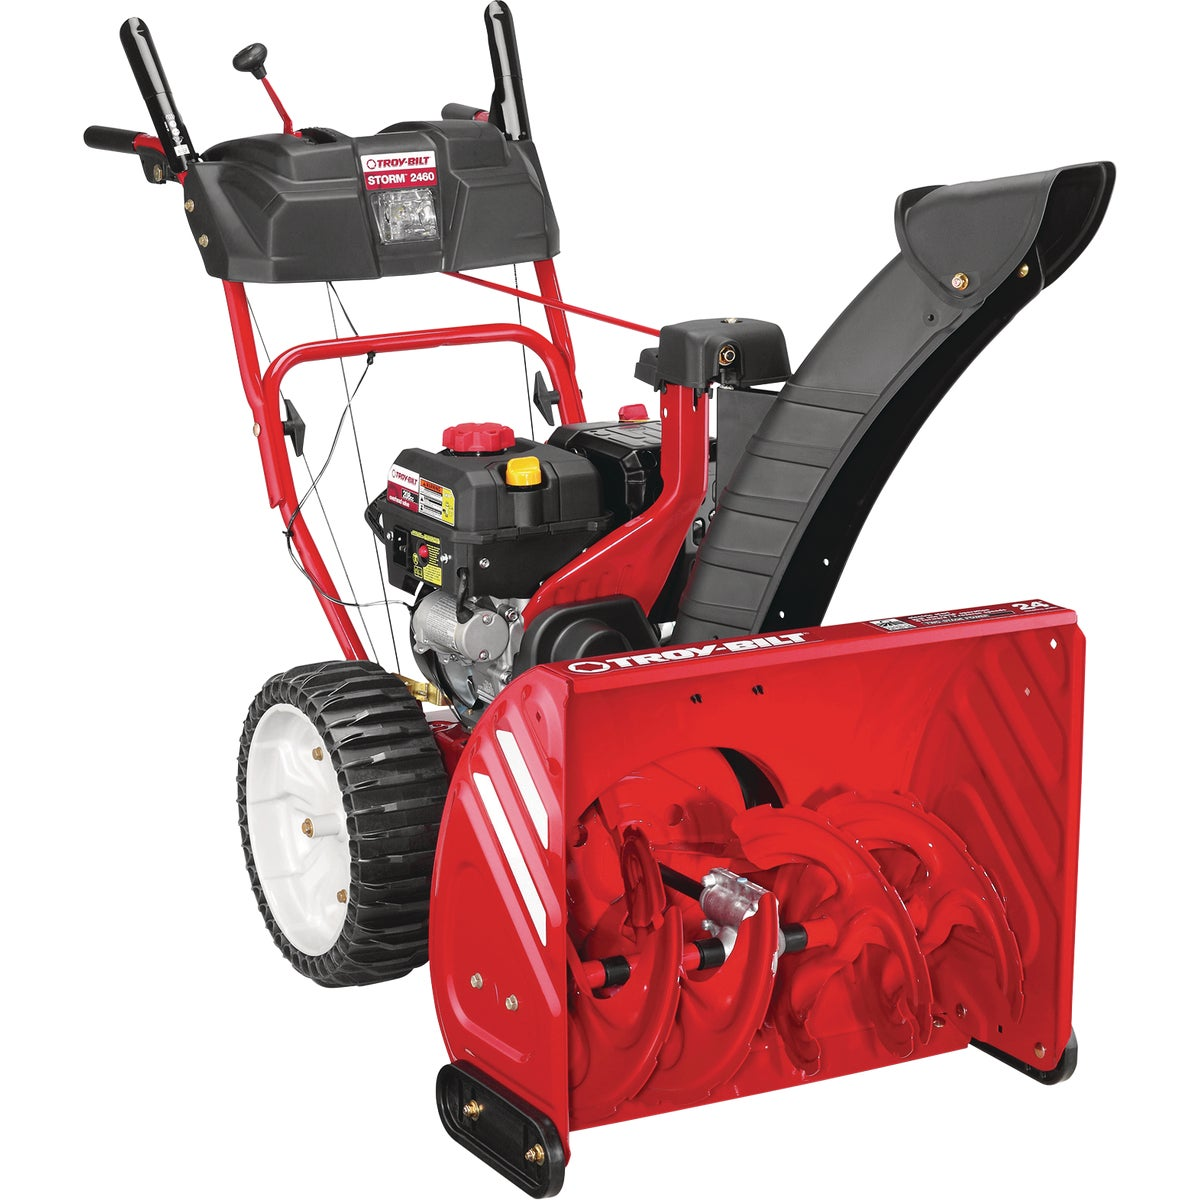 Troy-Bilt Storm 24 In. 4-Cycle Gas Snow Blower, 31AM6BO2766